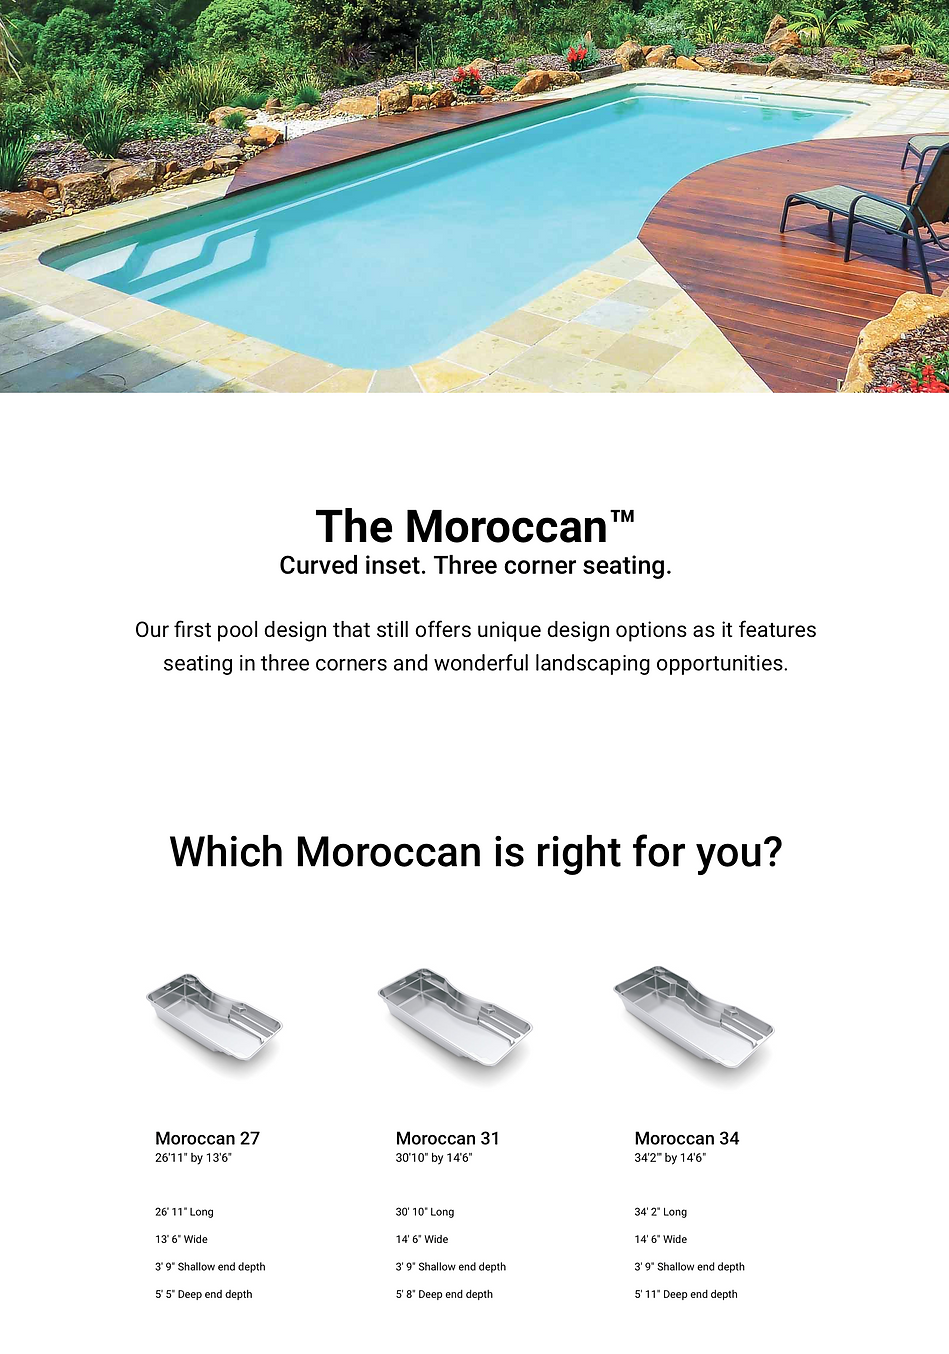 The Moroccan Design.png